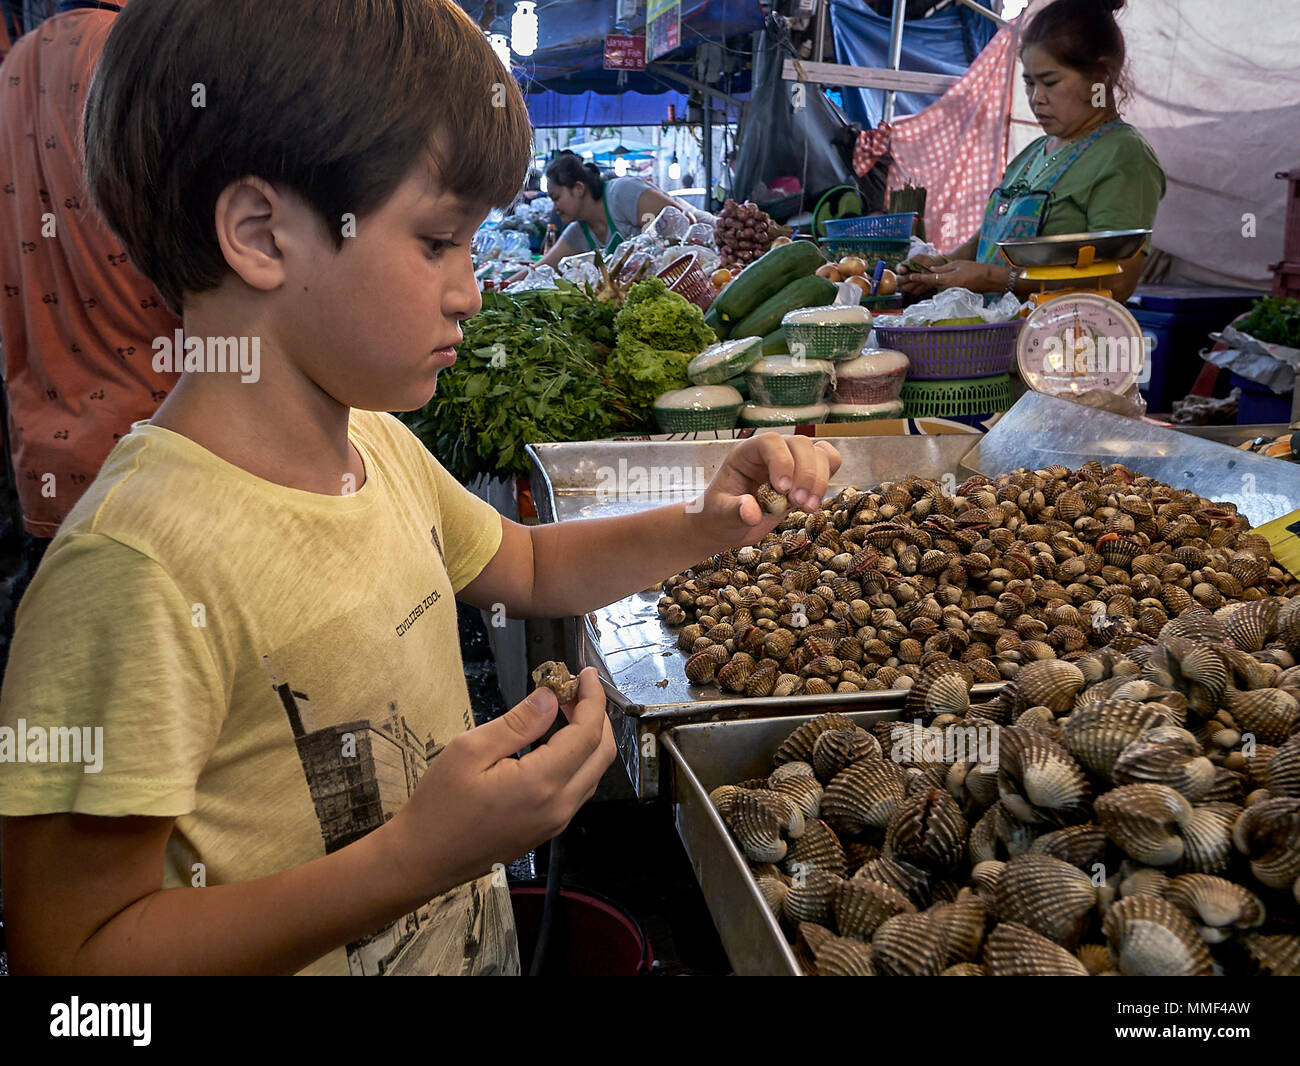 Curiosity. Young boy curiously studying snails at a Thailand street market stall. - Stock Image